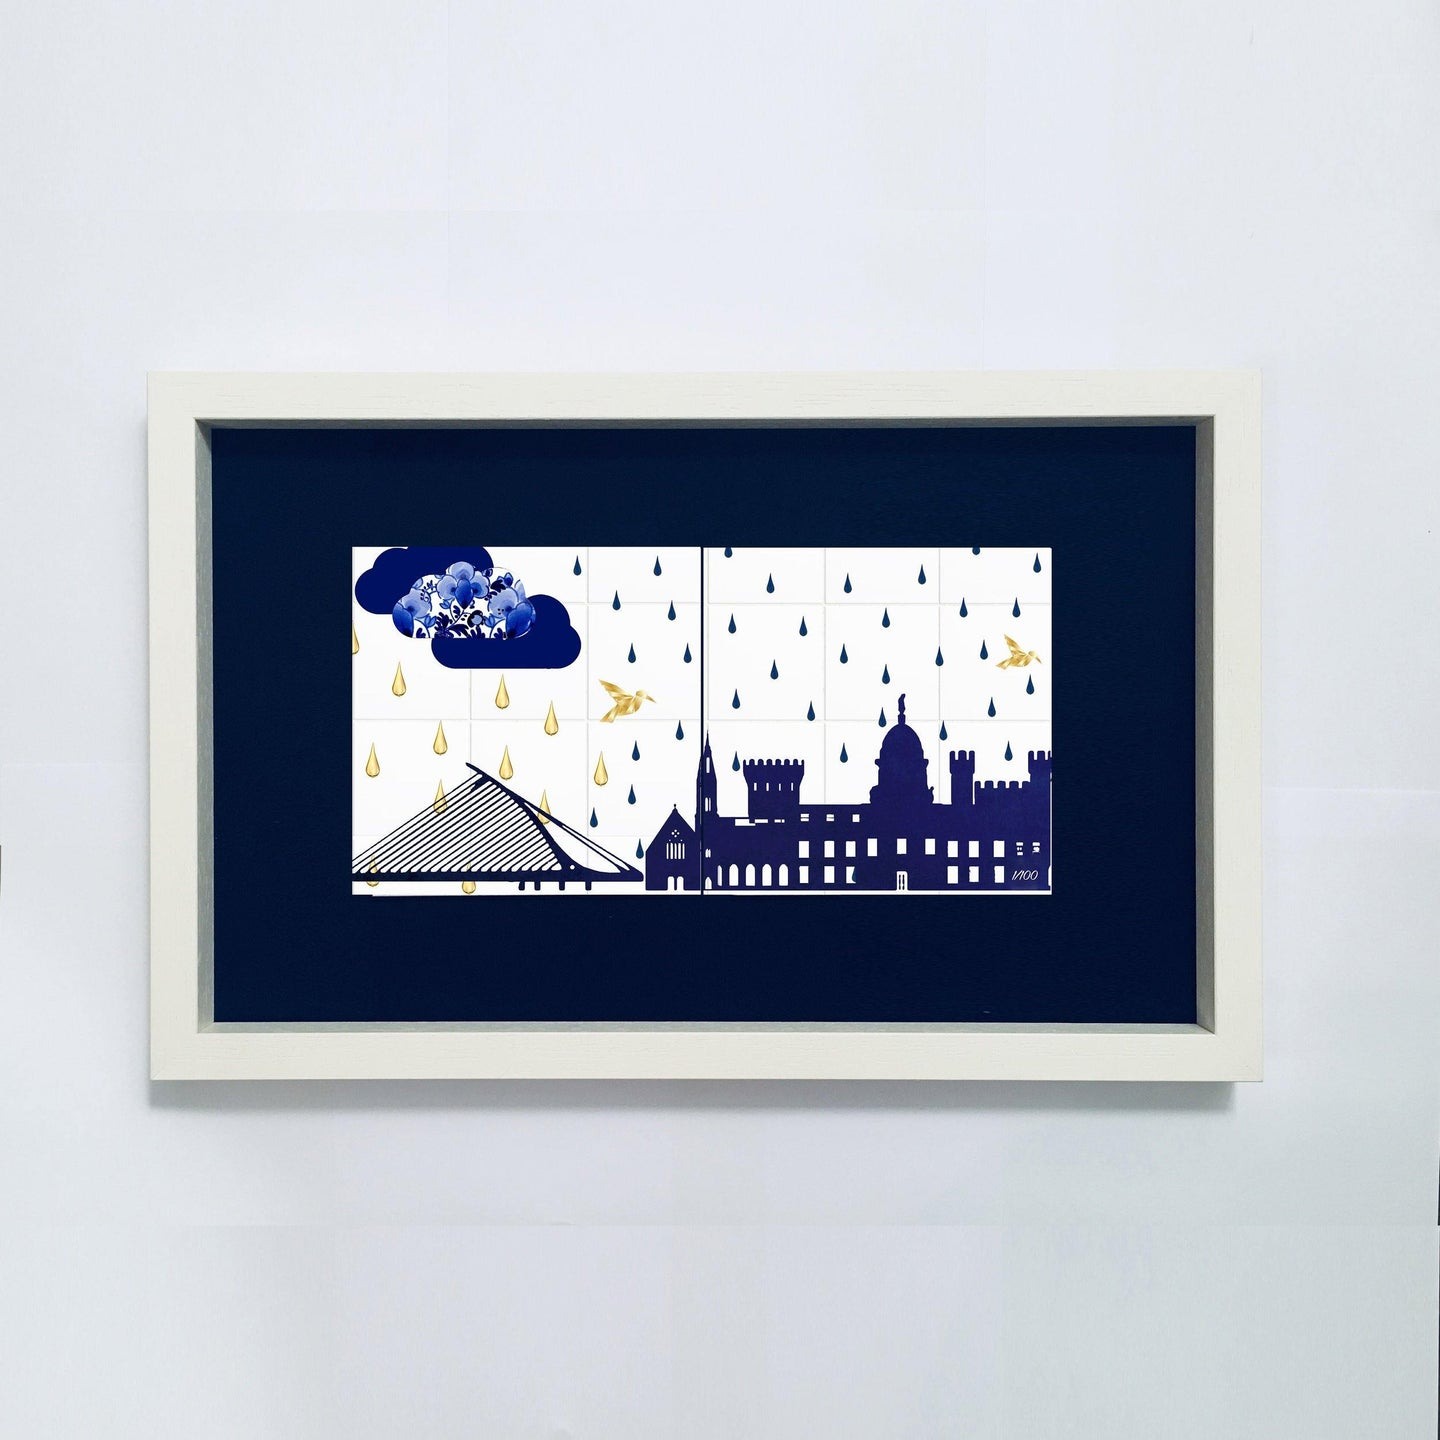 Irish Weather double tile framed - The Collective Dublin